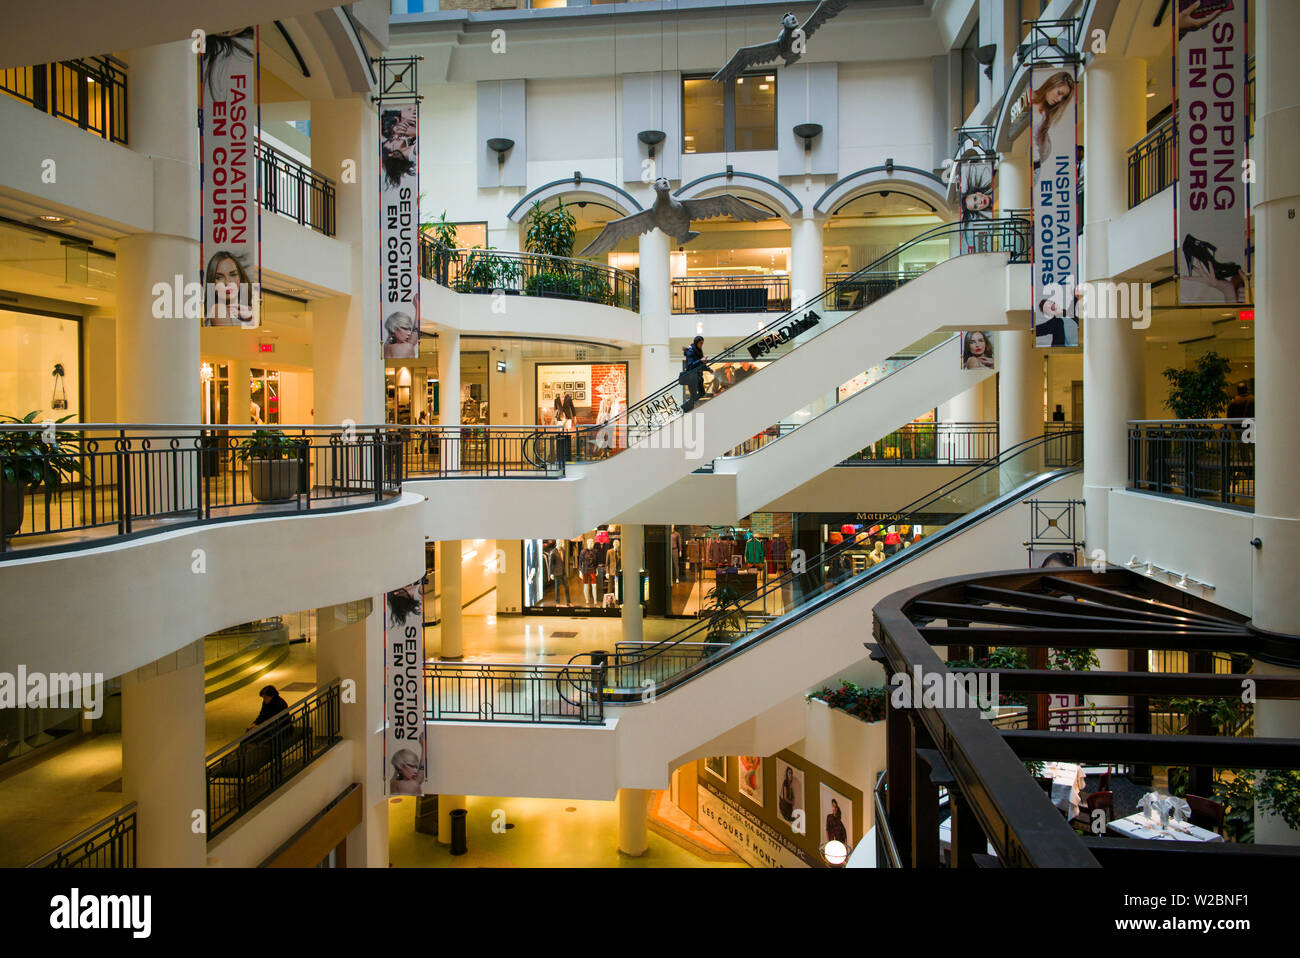 Canada, Quebec, Montreal, Les Cours Mont-Royal, shopping center - Stock Image